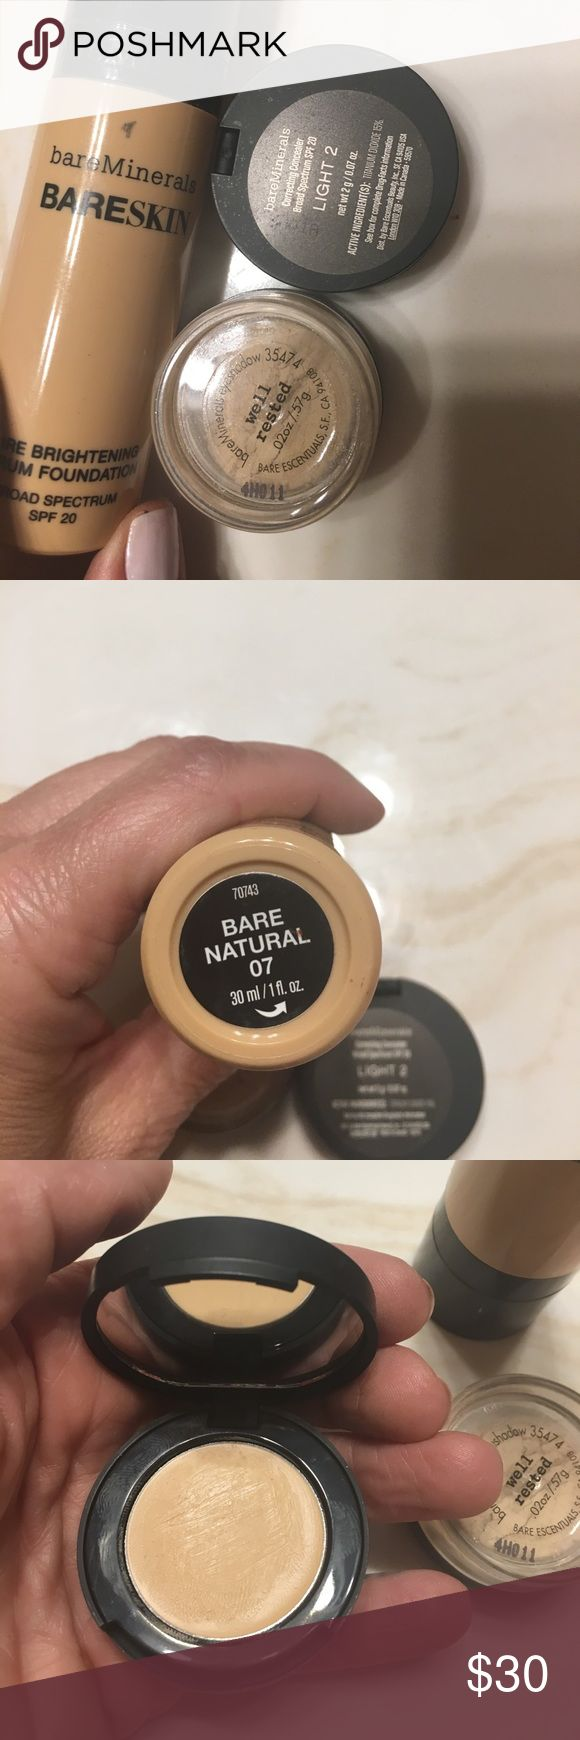 Bare minerals: foundation, well rested, concealer Bare minerals: bare skin foundation- bare natural 07-used maybe 1/4 of, well rested- used maybe 1/8 of, concealer- light #2- only swabbed top with qtip- sale as bundle bareMinerals Makeup Foundation